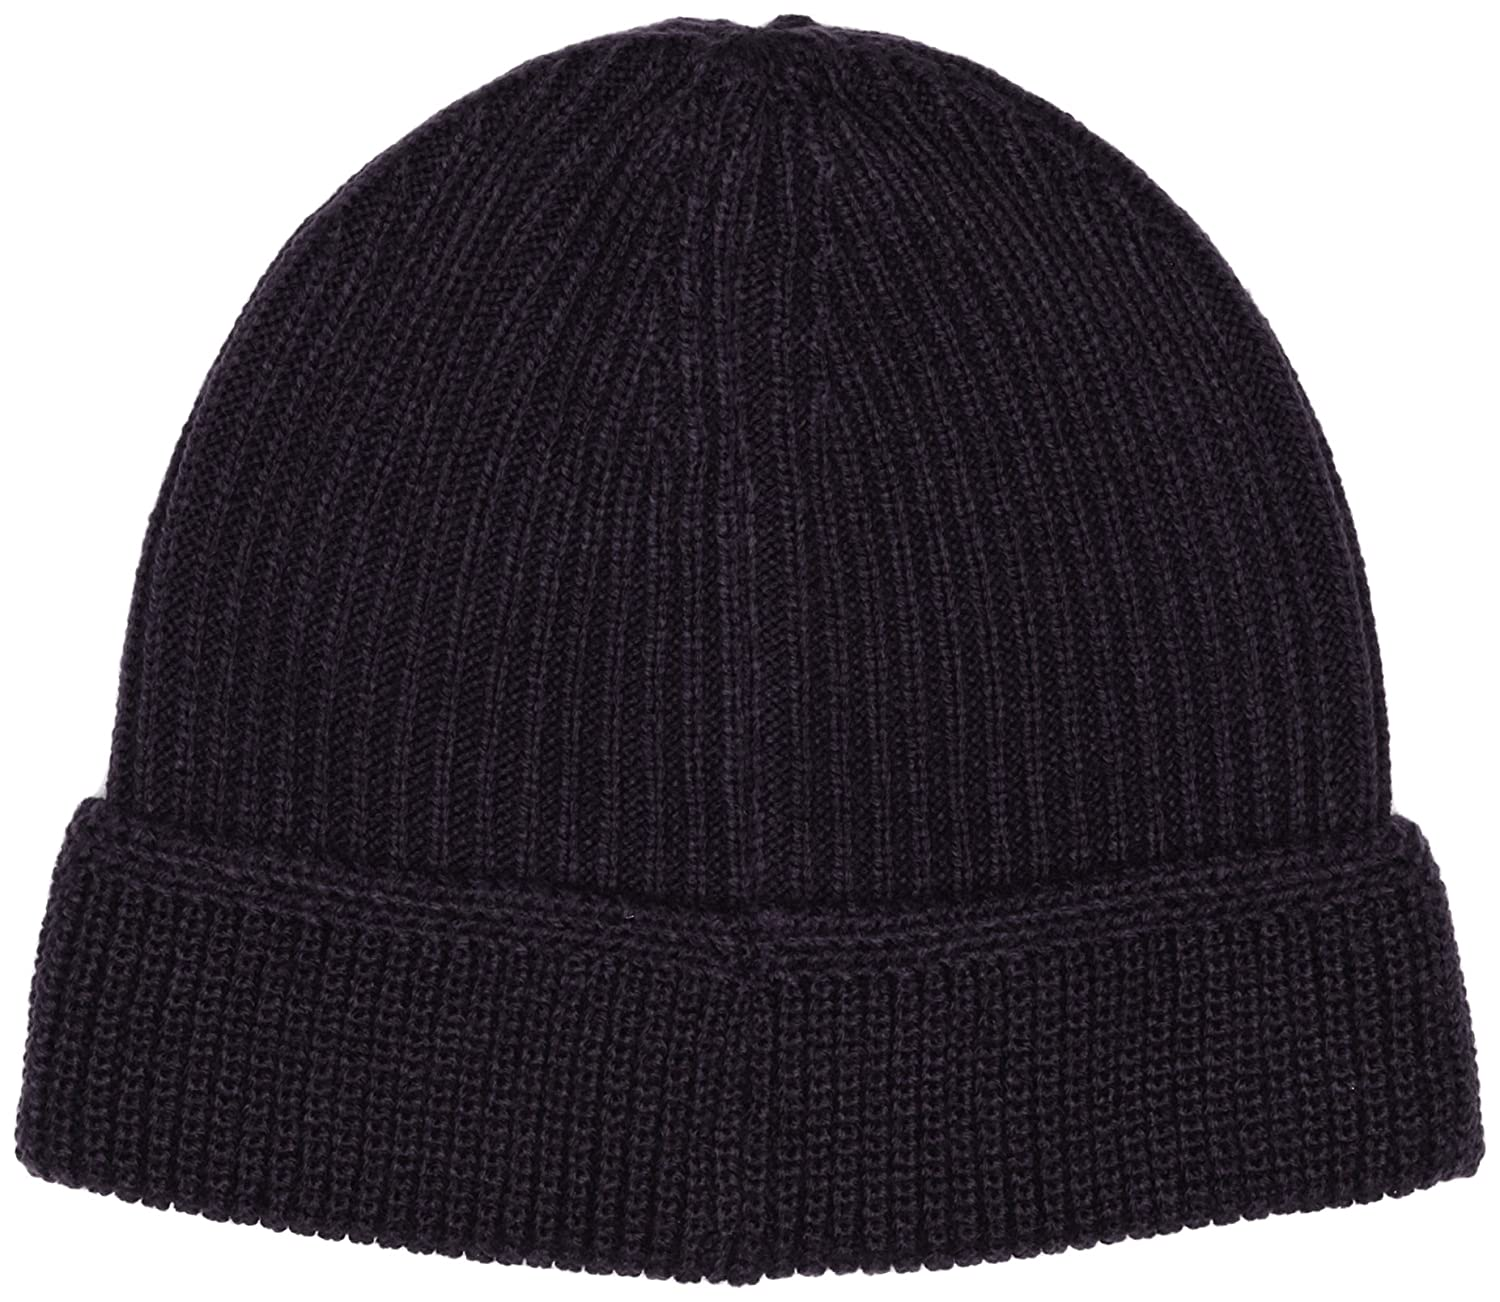 83bfccd599d Kangol Headwear Squad Fully Fashioned Cuff Pull-On Beanie Hat   Amazon.co.uk  Clothing